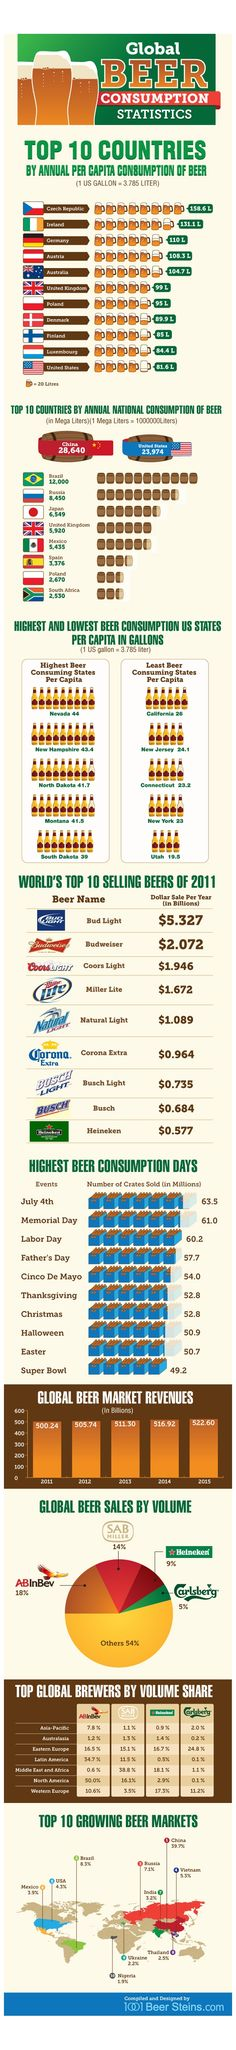 This is one of the best infographics about the global beer consumption I have ever seen!